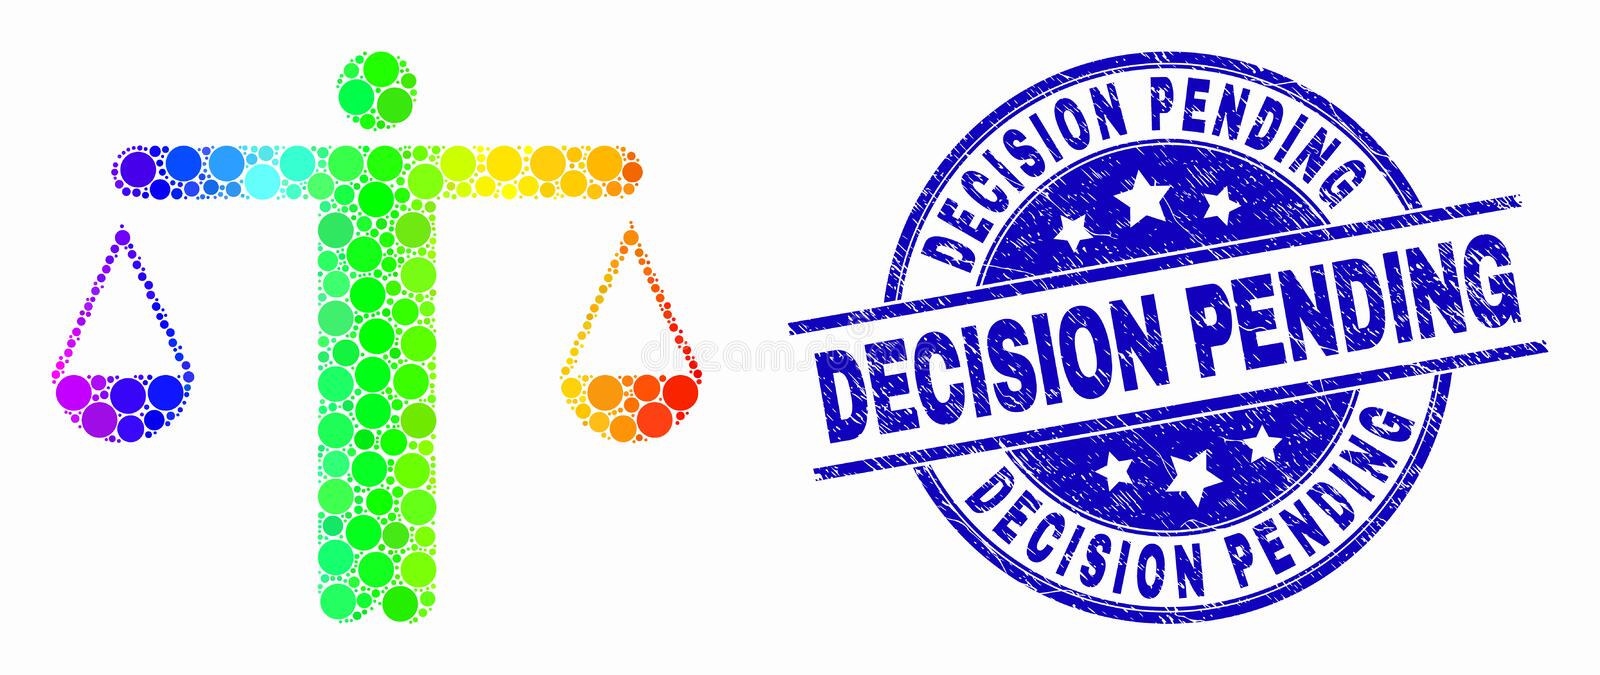 Vector Rainbow Colored Dotted Judge Icon and Grunge Decision Pending Watermark. Dotted spectral judge mosaic icon and Decision Pending seal stamp. Blue vector stock illustration